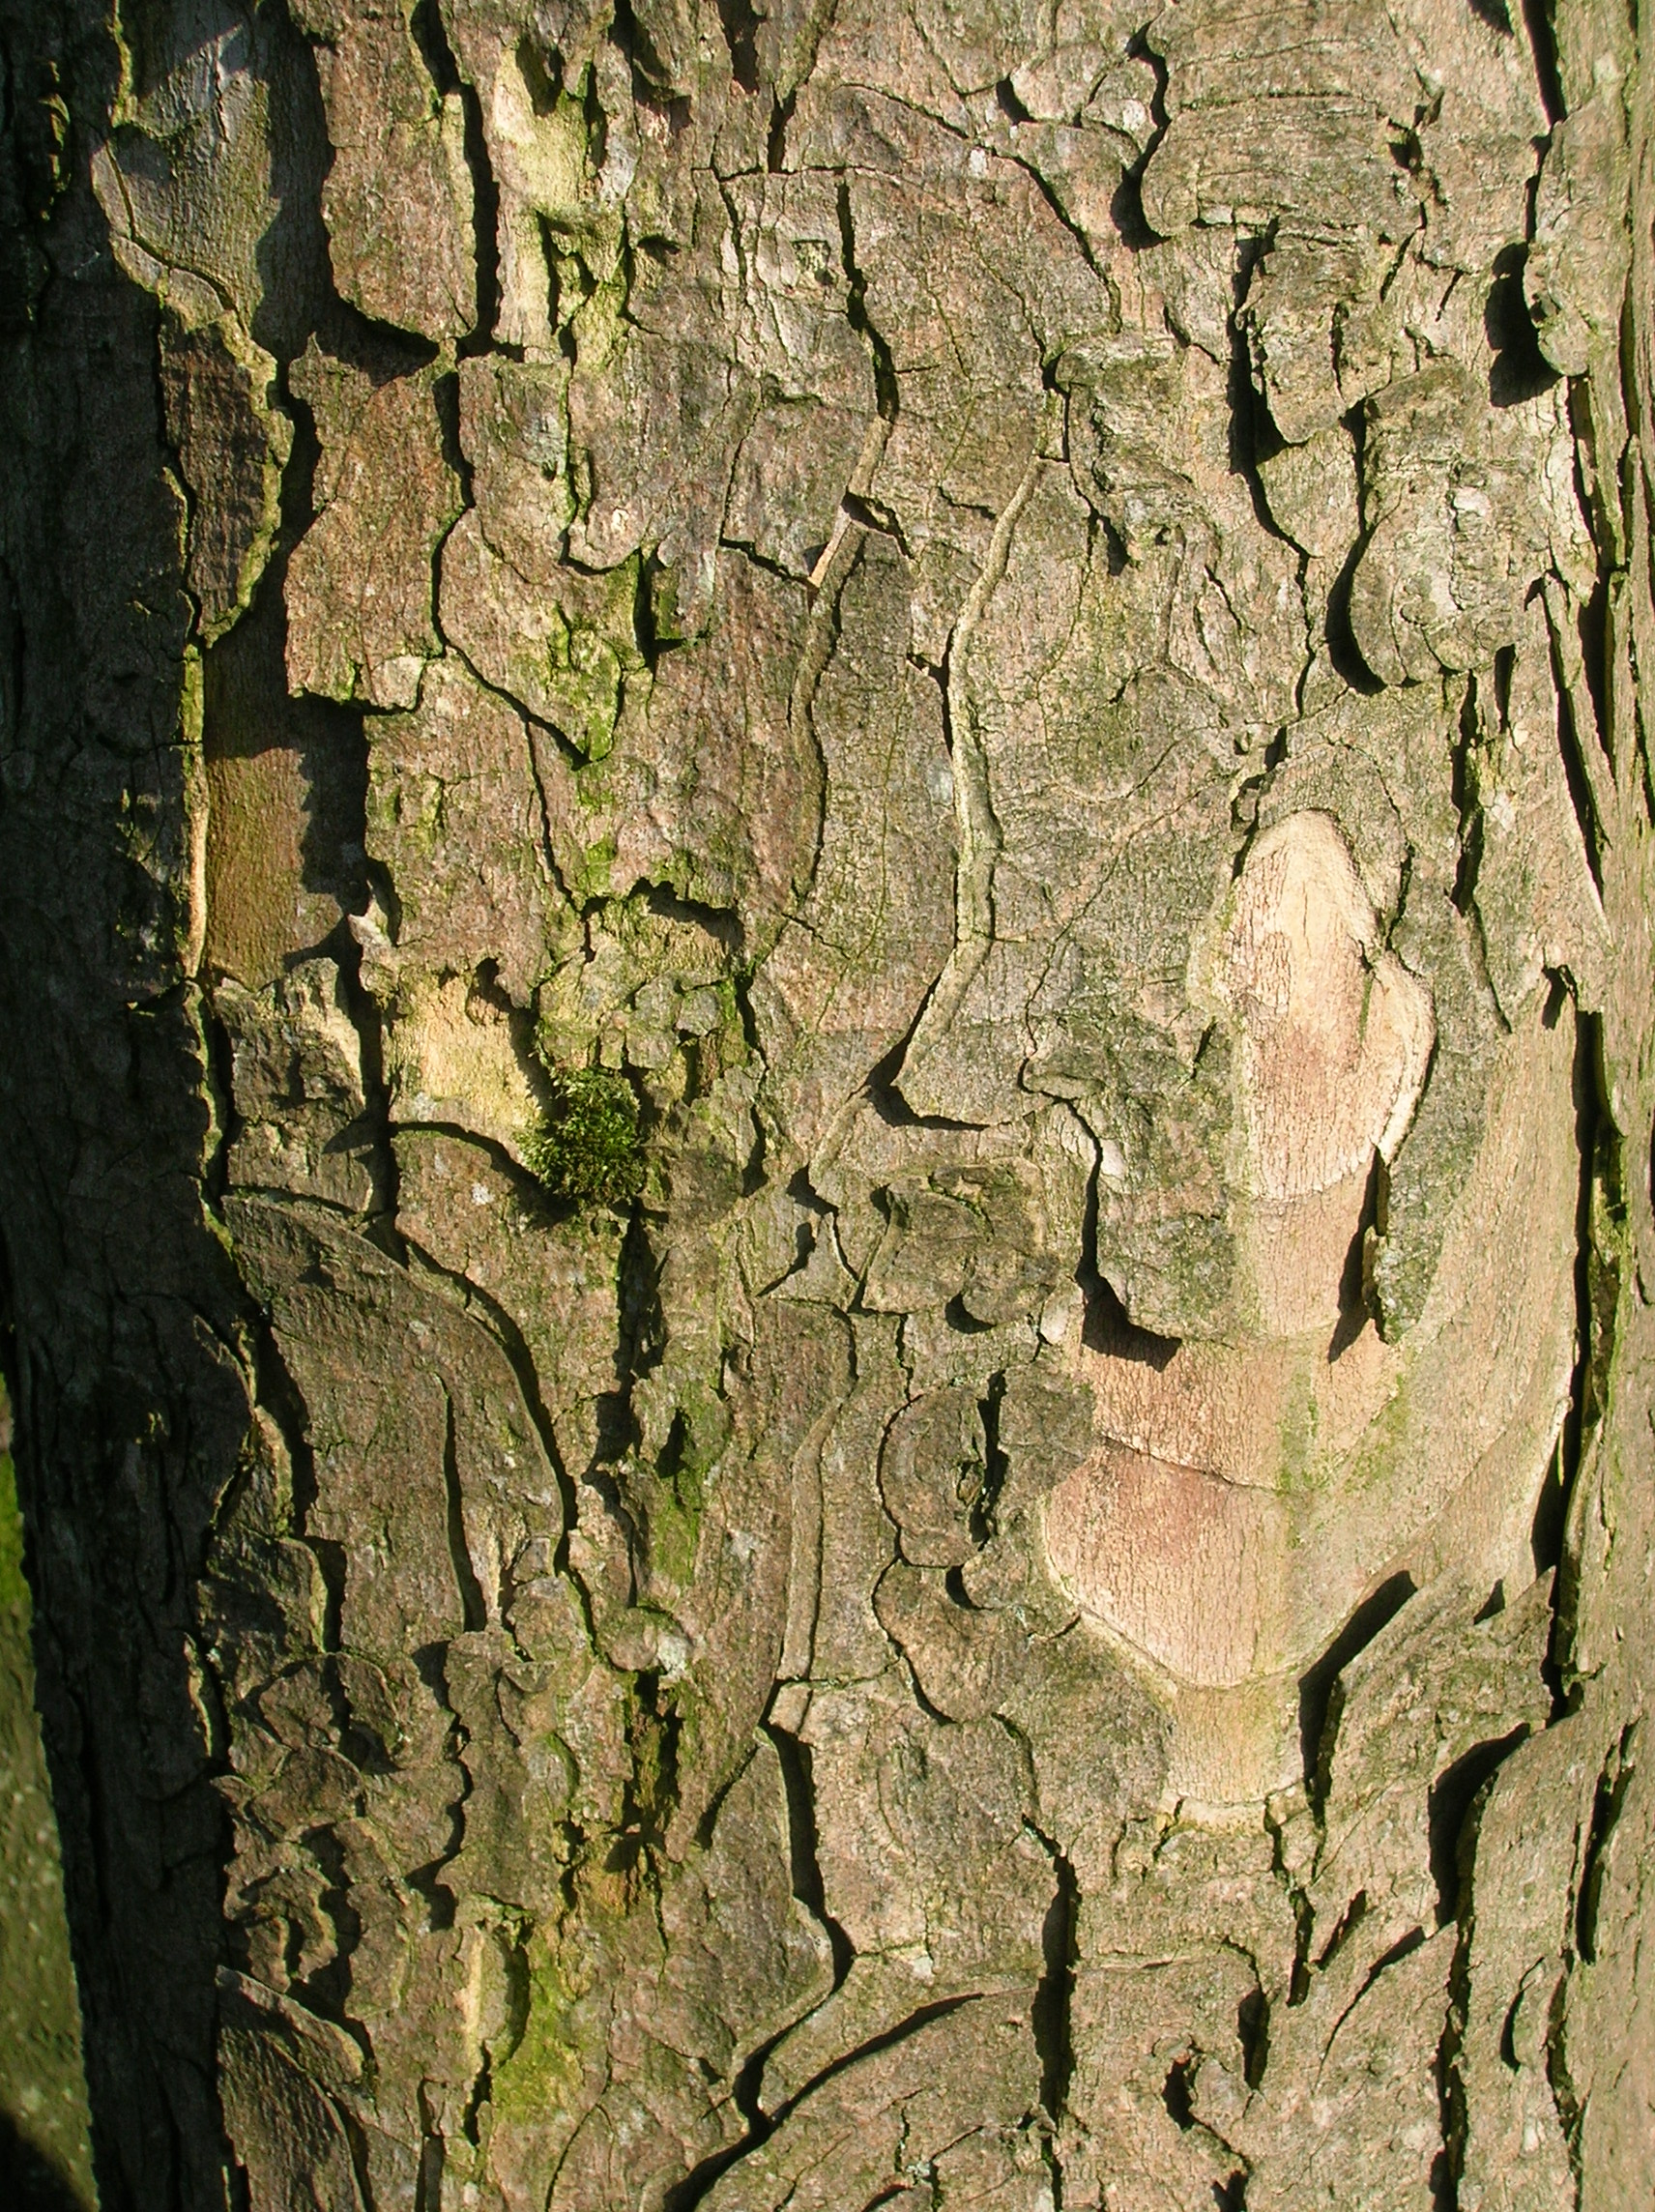 Bark of an old Sycamore